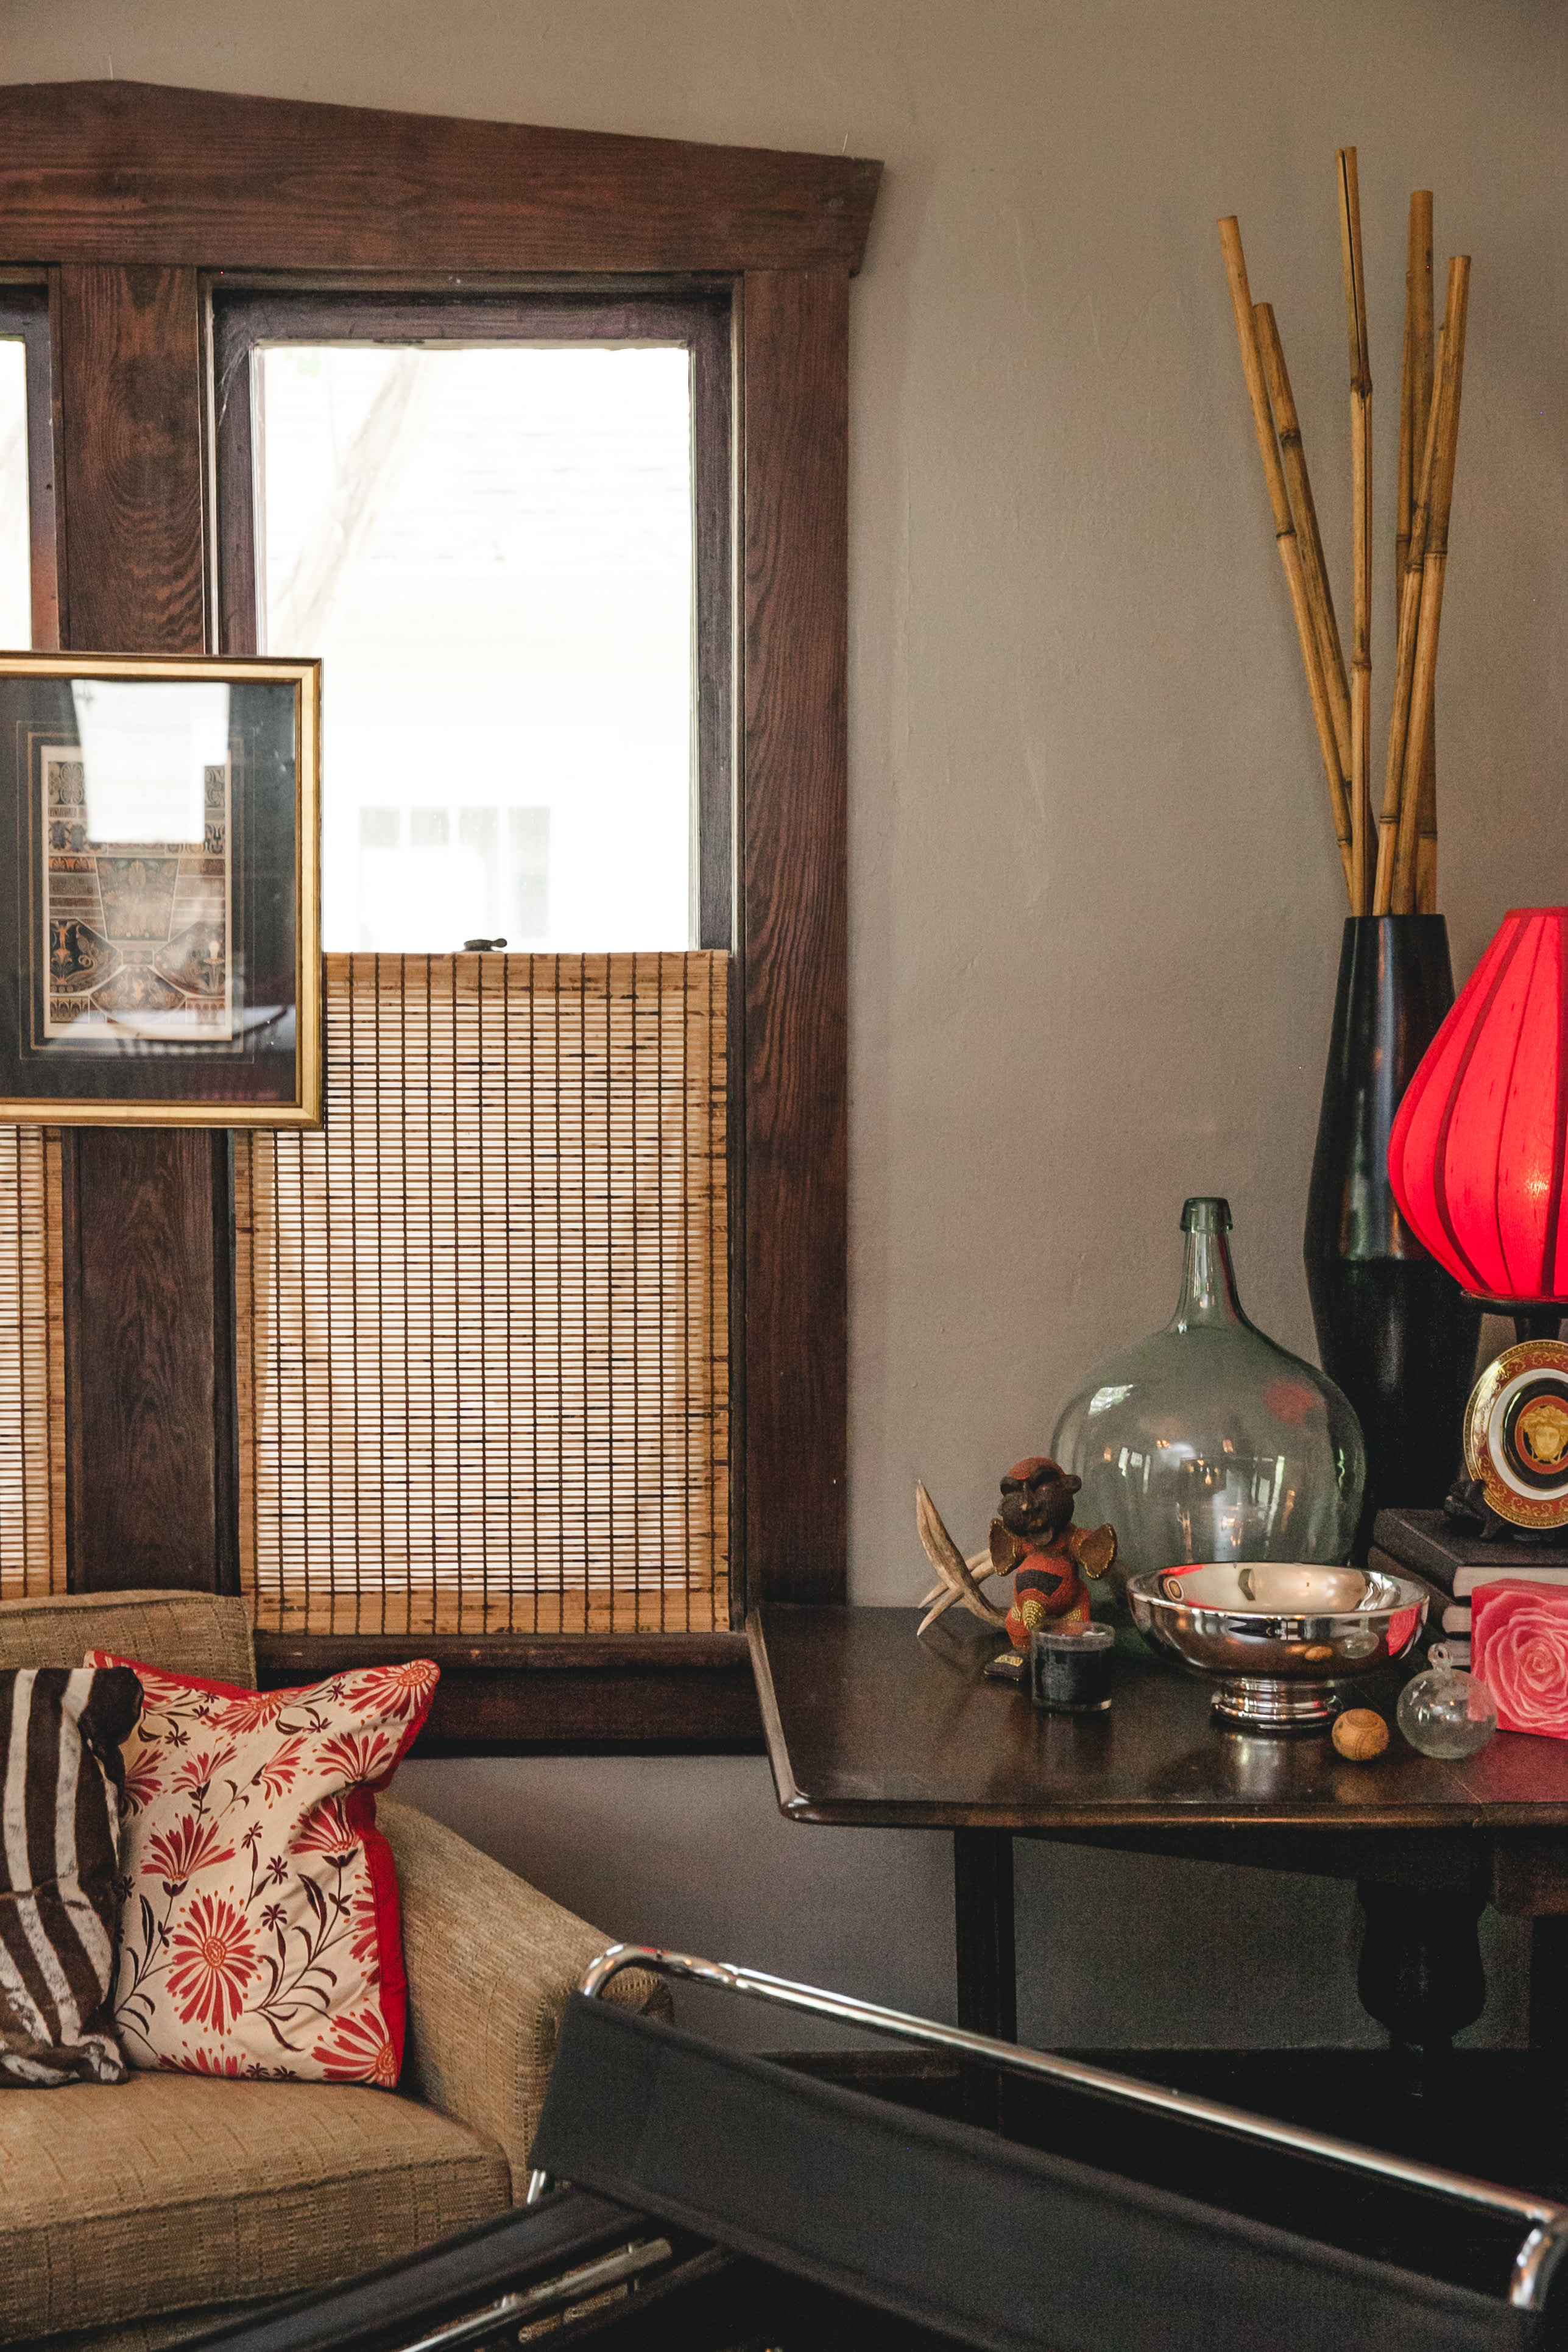 House Tour: A Home with a History in East Nashville